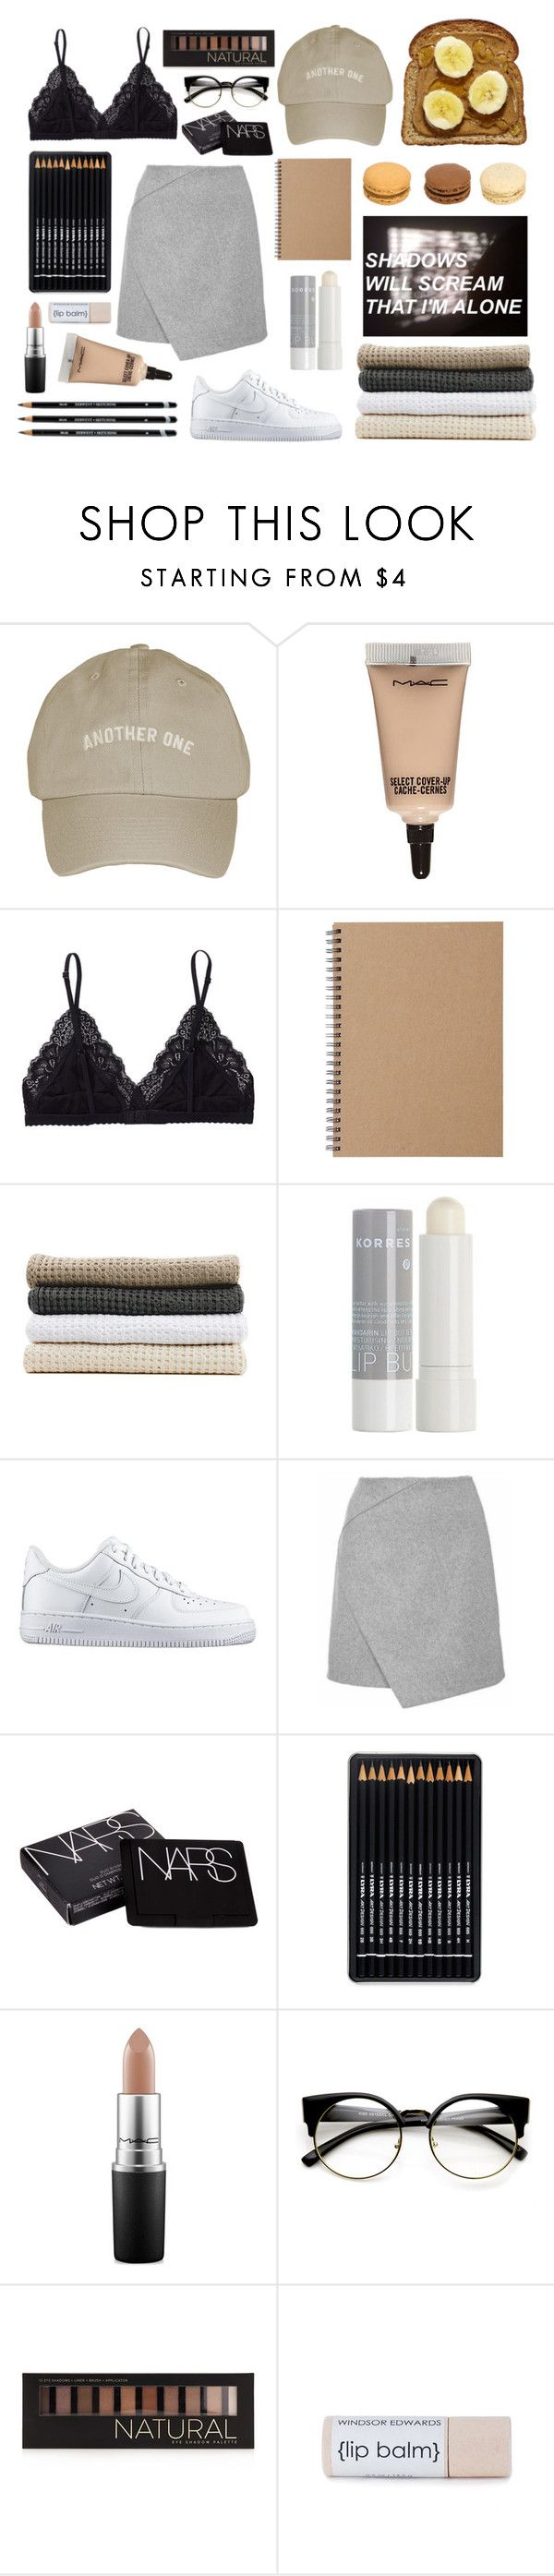 """"""":Shadows in the night:"""" by bullettpatch ❤ liked on Polyvore featuring MAC Cosmetics, Talula, Muji, Abyss & Habidecor, Korres, NIKE, NARS Cosmetics and Forever 21"""